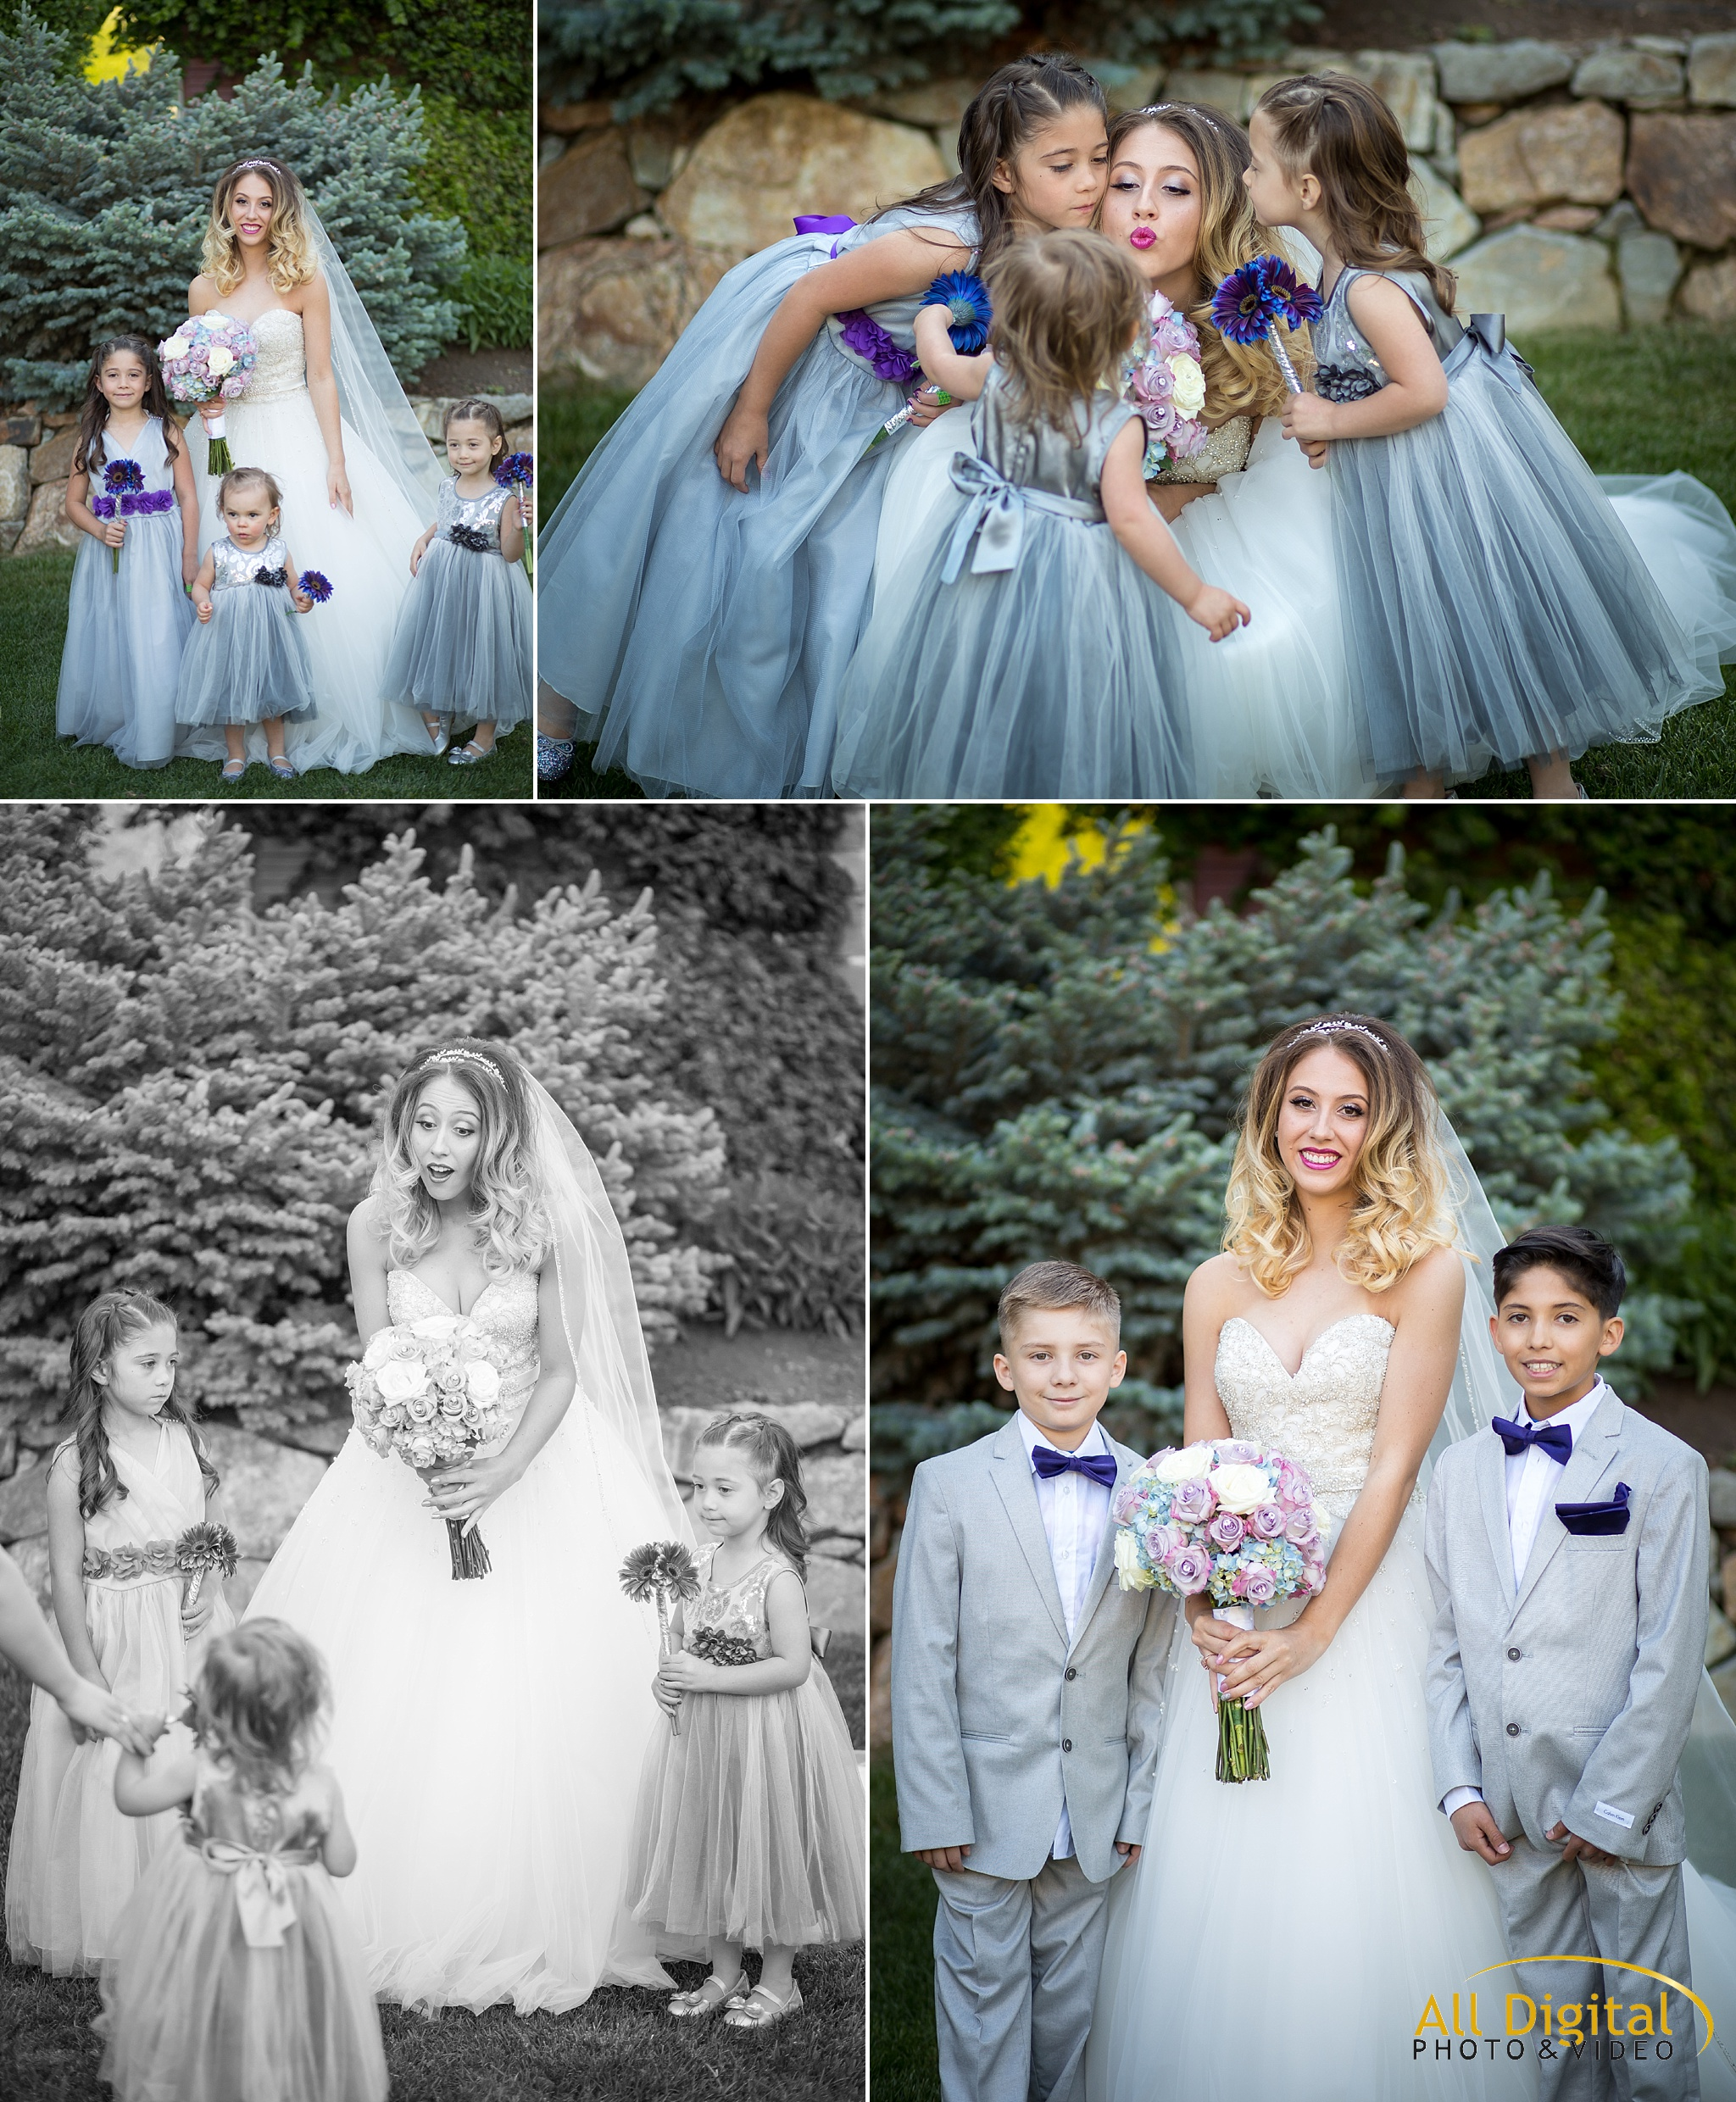 Bride, flower girls, and ring bearer portraits at Stonebrook Manor.